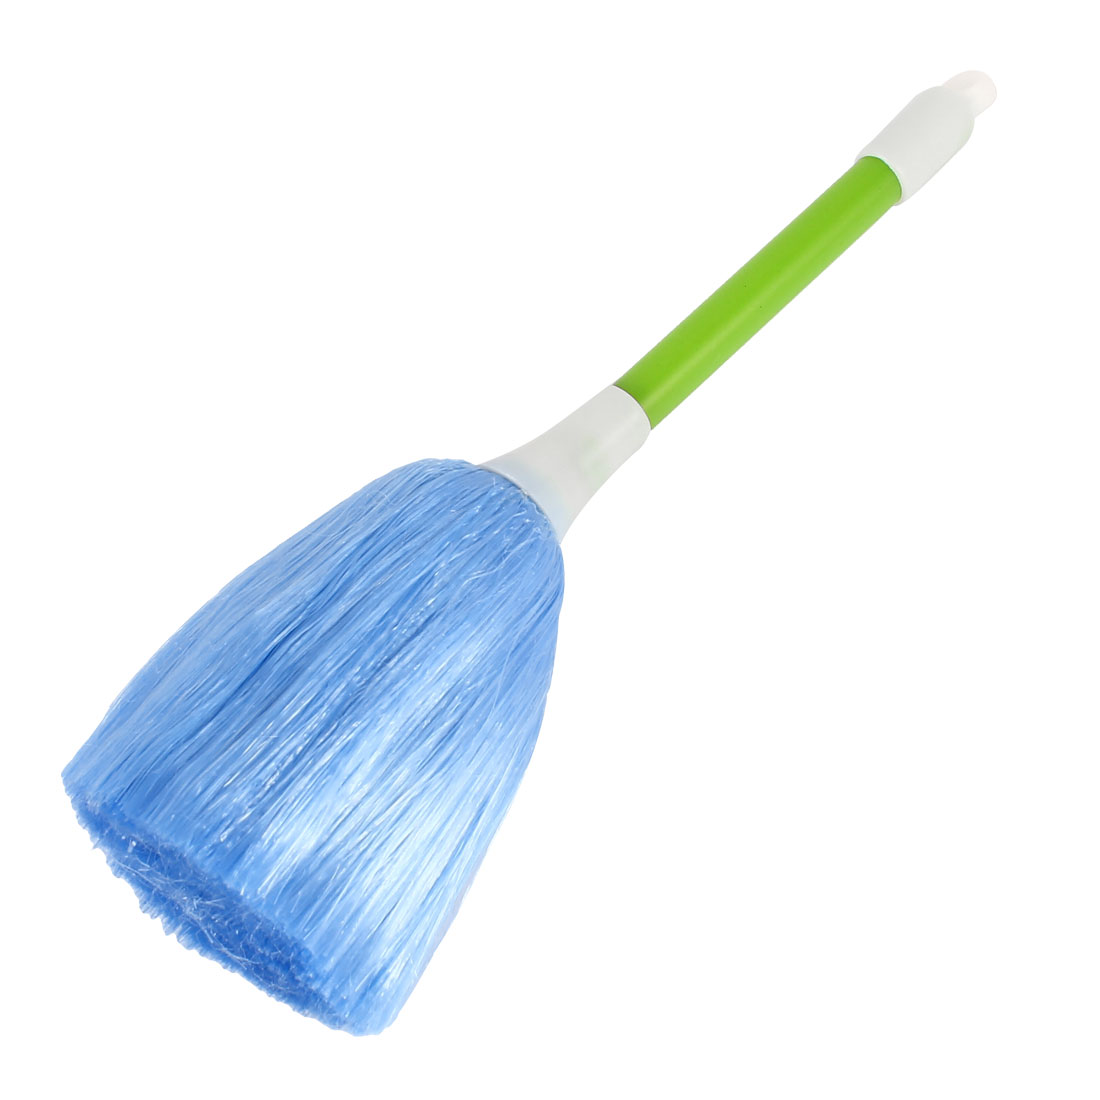 Computer PC Laptop Keyboard TV Camera Cleanner Cleaning Dust Brush Blue Green 21cm Long